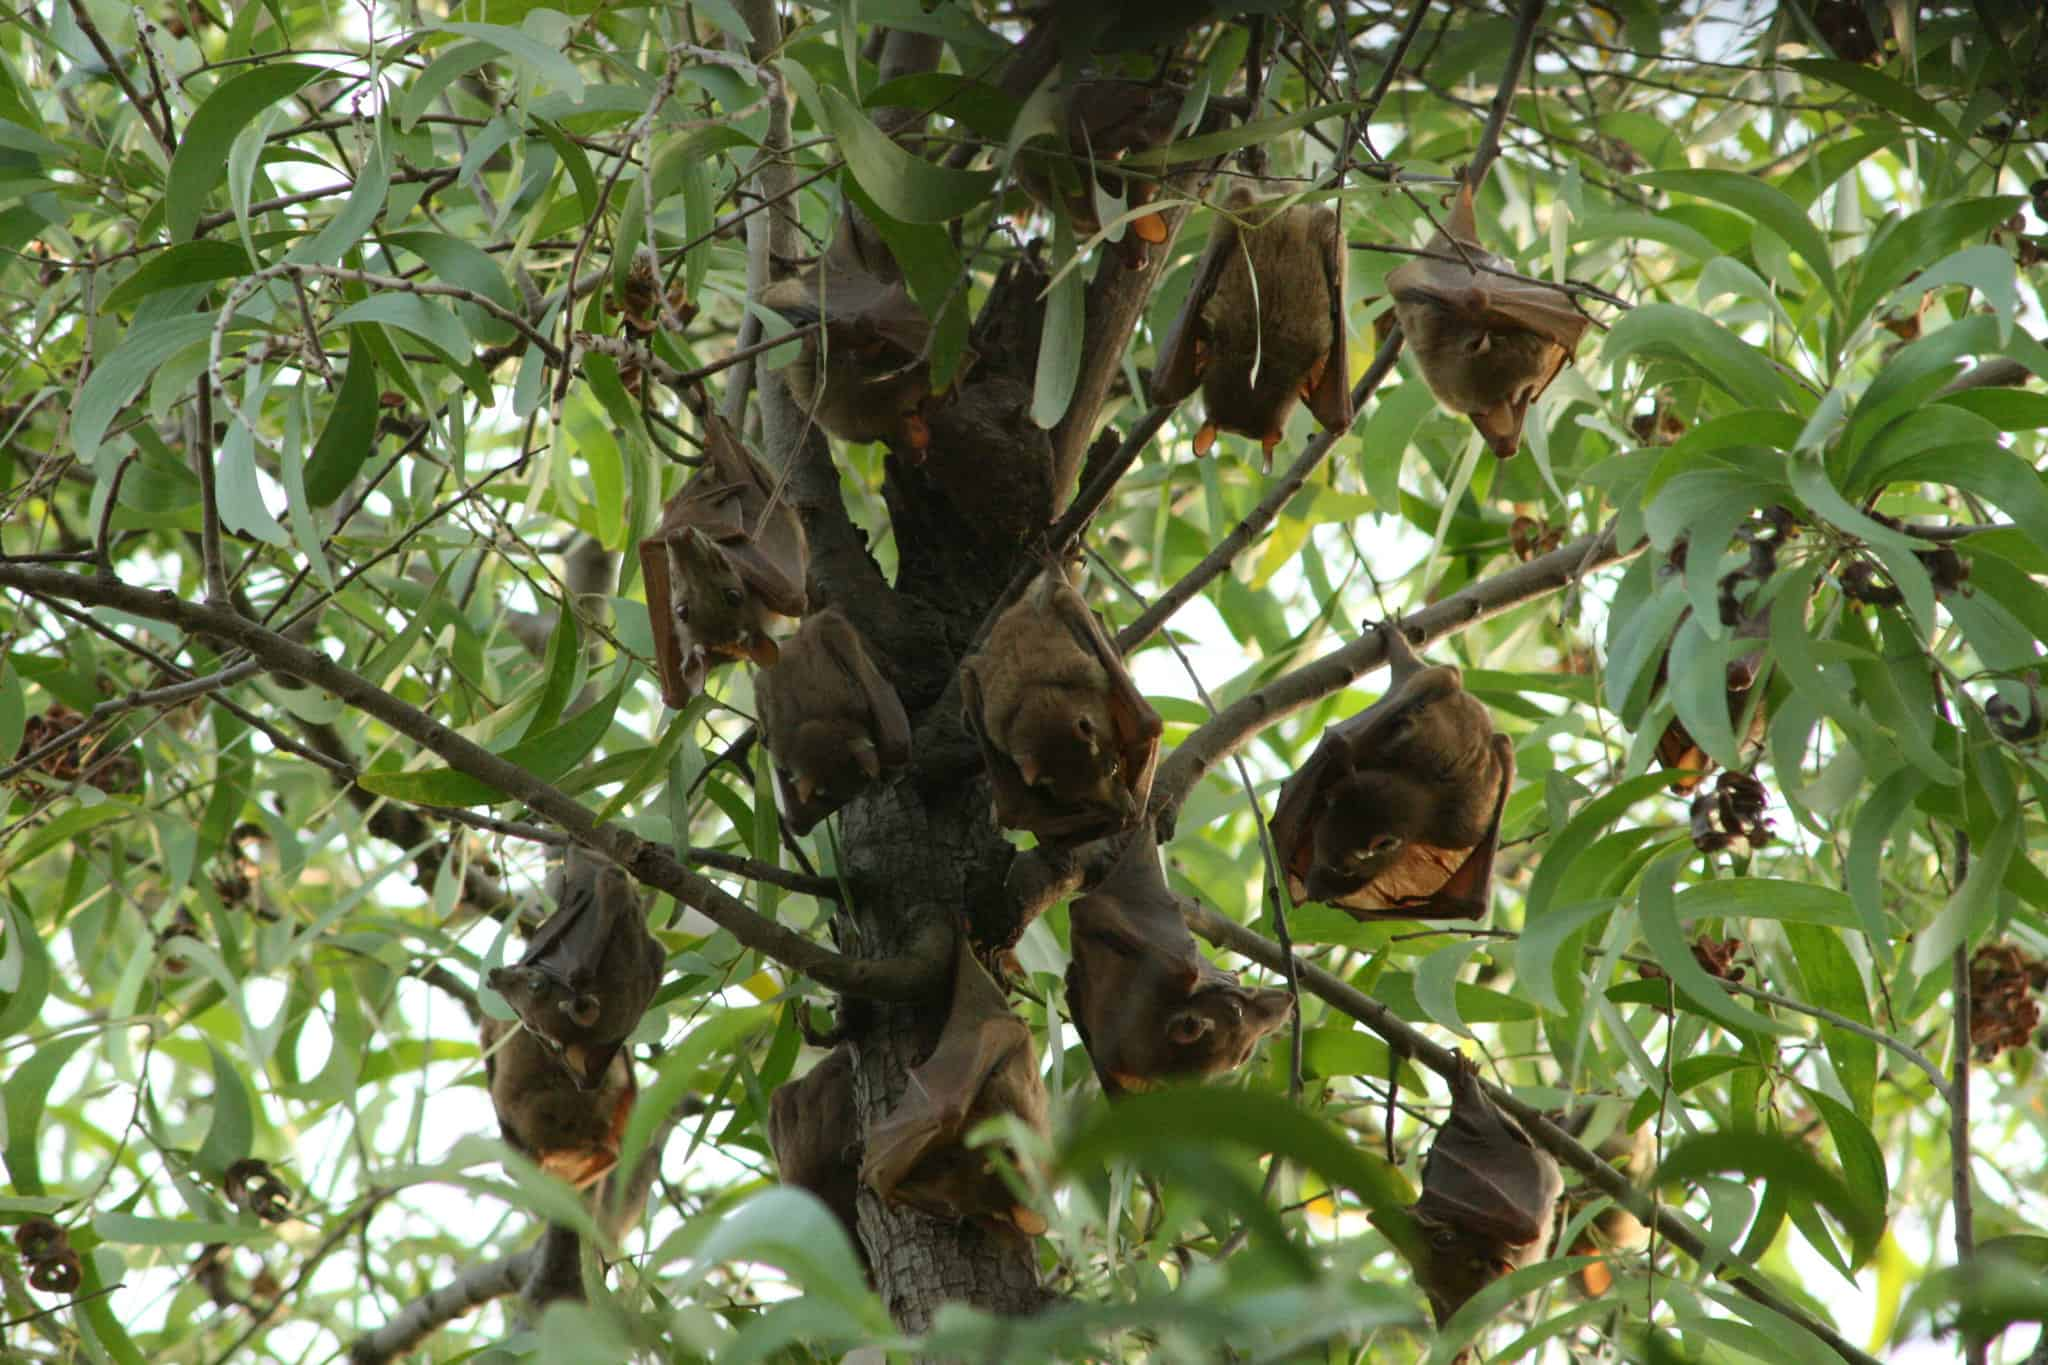 Bats hang in a tree in Togo